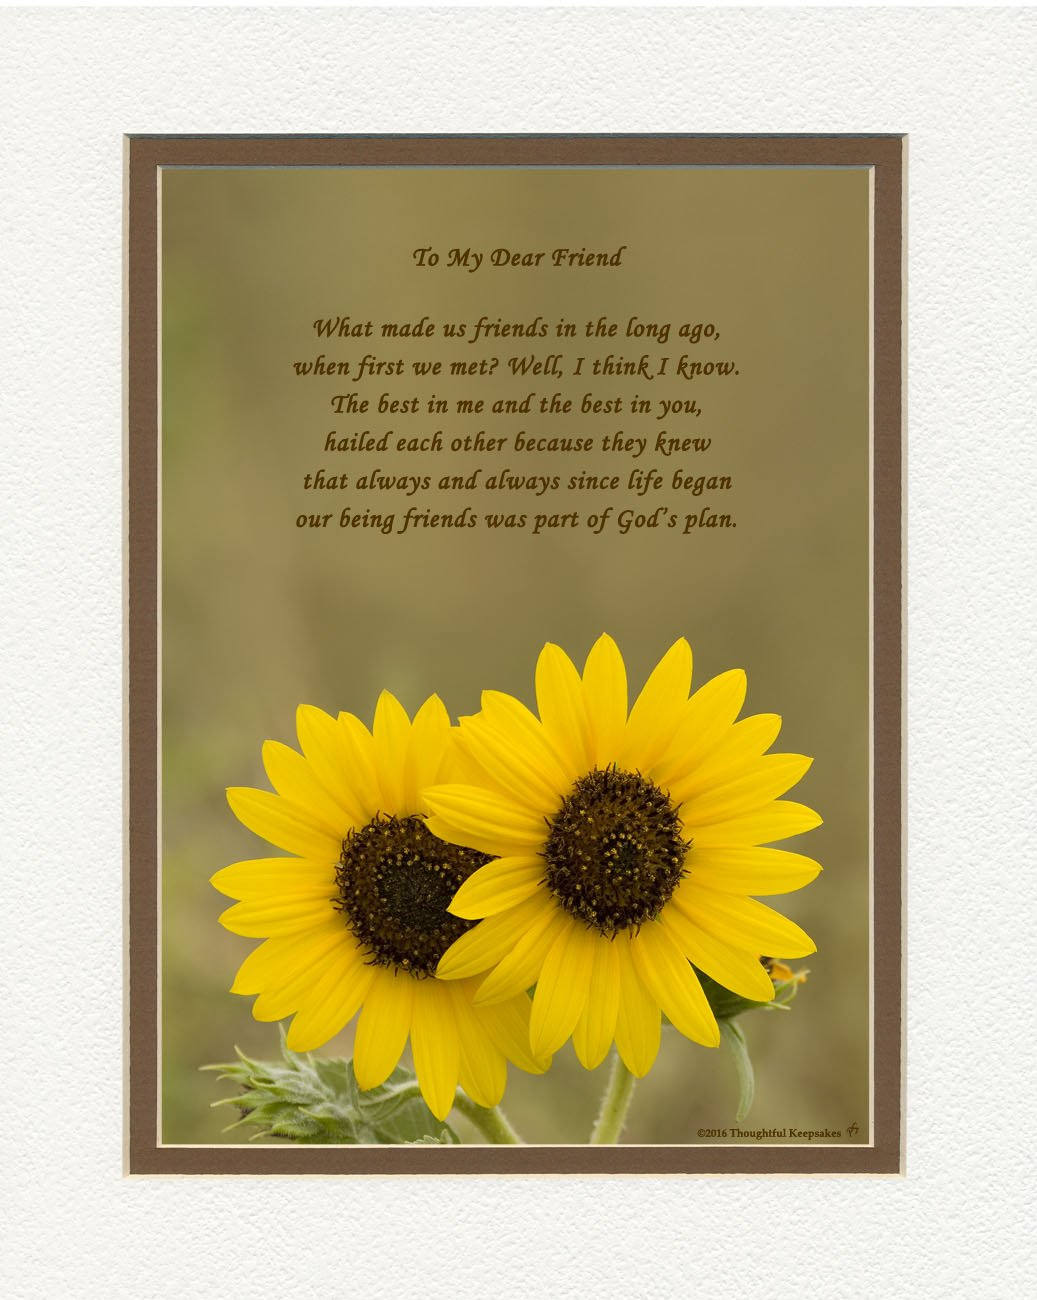 Special Friend Gift. Sunflowers Photo with ''What Made Us Friends'' Poem, 8x10 Double Matted. Great Friendship Gift for Birthday or Christmas..